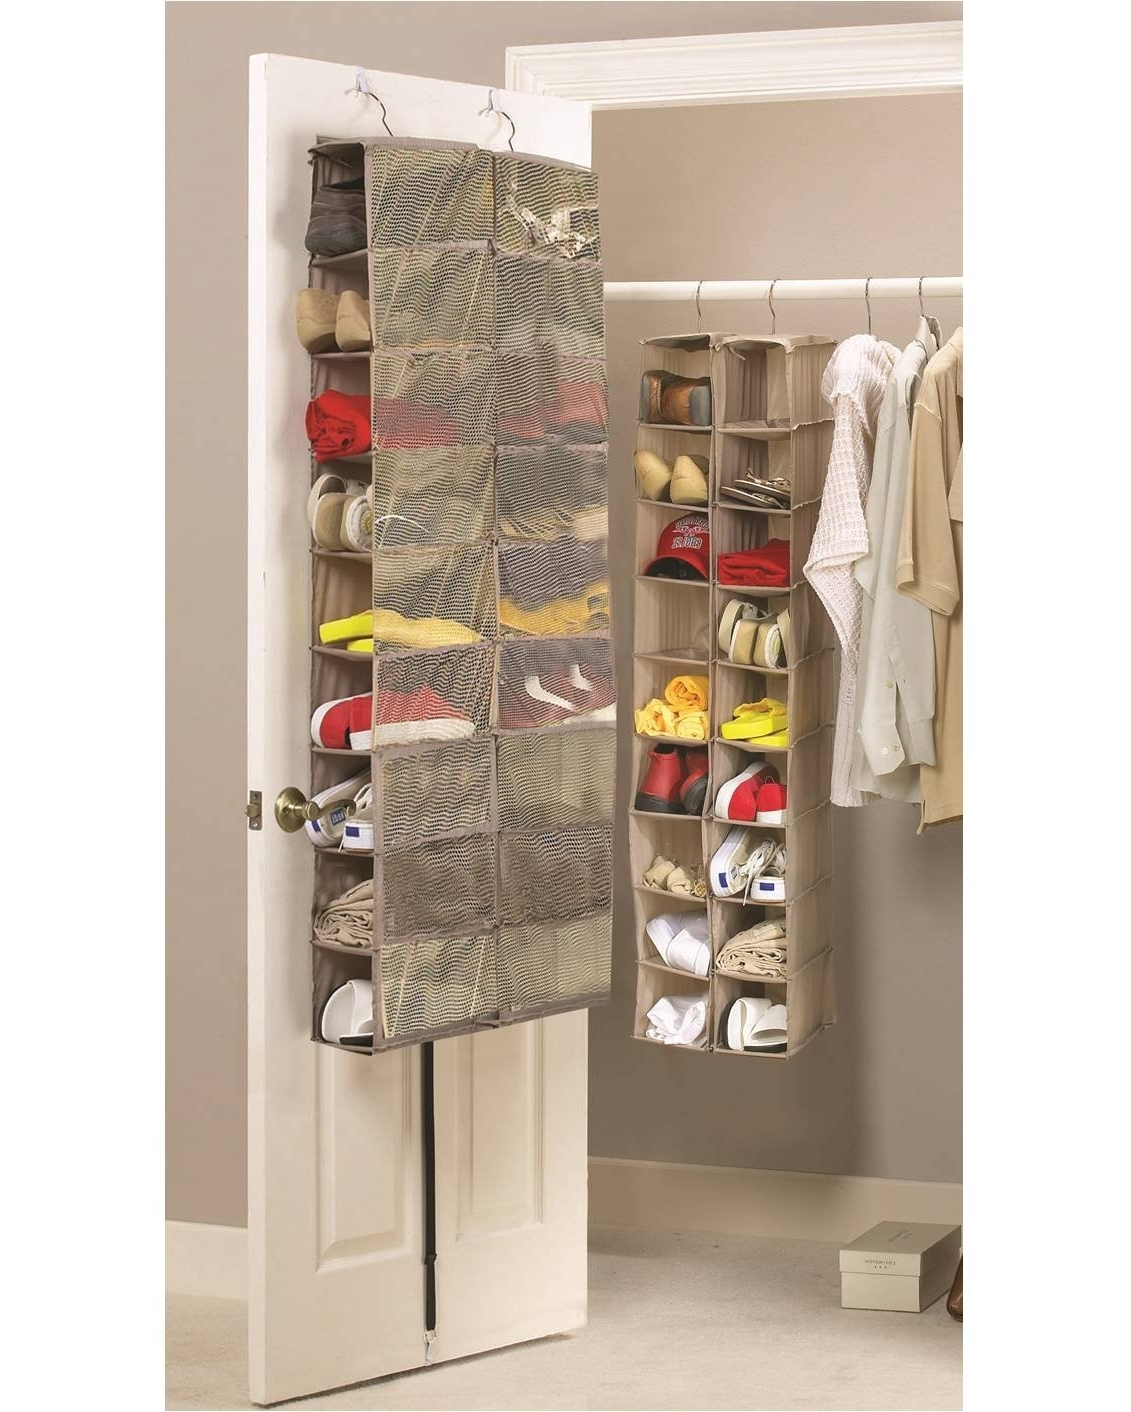 Large Heavy Duty 18 Pocket Hanging Shoe Organiser For The Wardrobe With Preferred Wardrobes Shoe Storages (View 7 of 15)